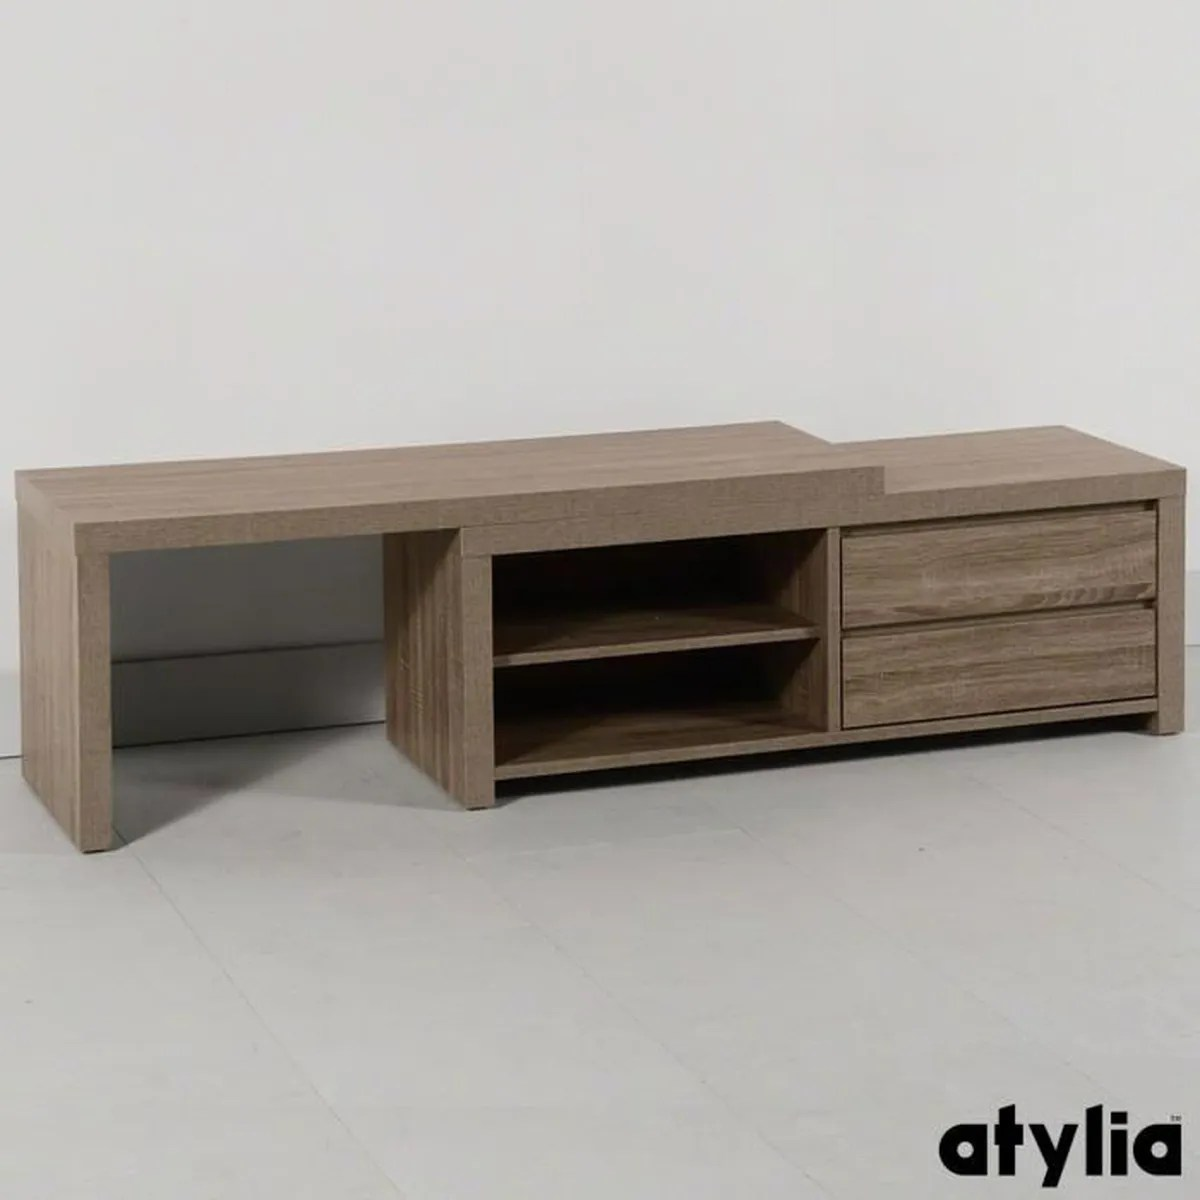 La Redoute Interieur Meuble Tv Atylia Meuble Tv Meuble Tv Dangle Chne Massif Edgar La